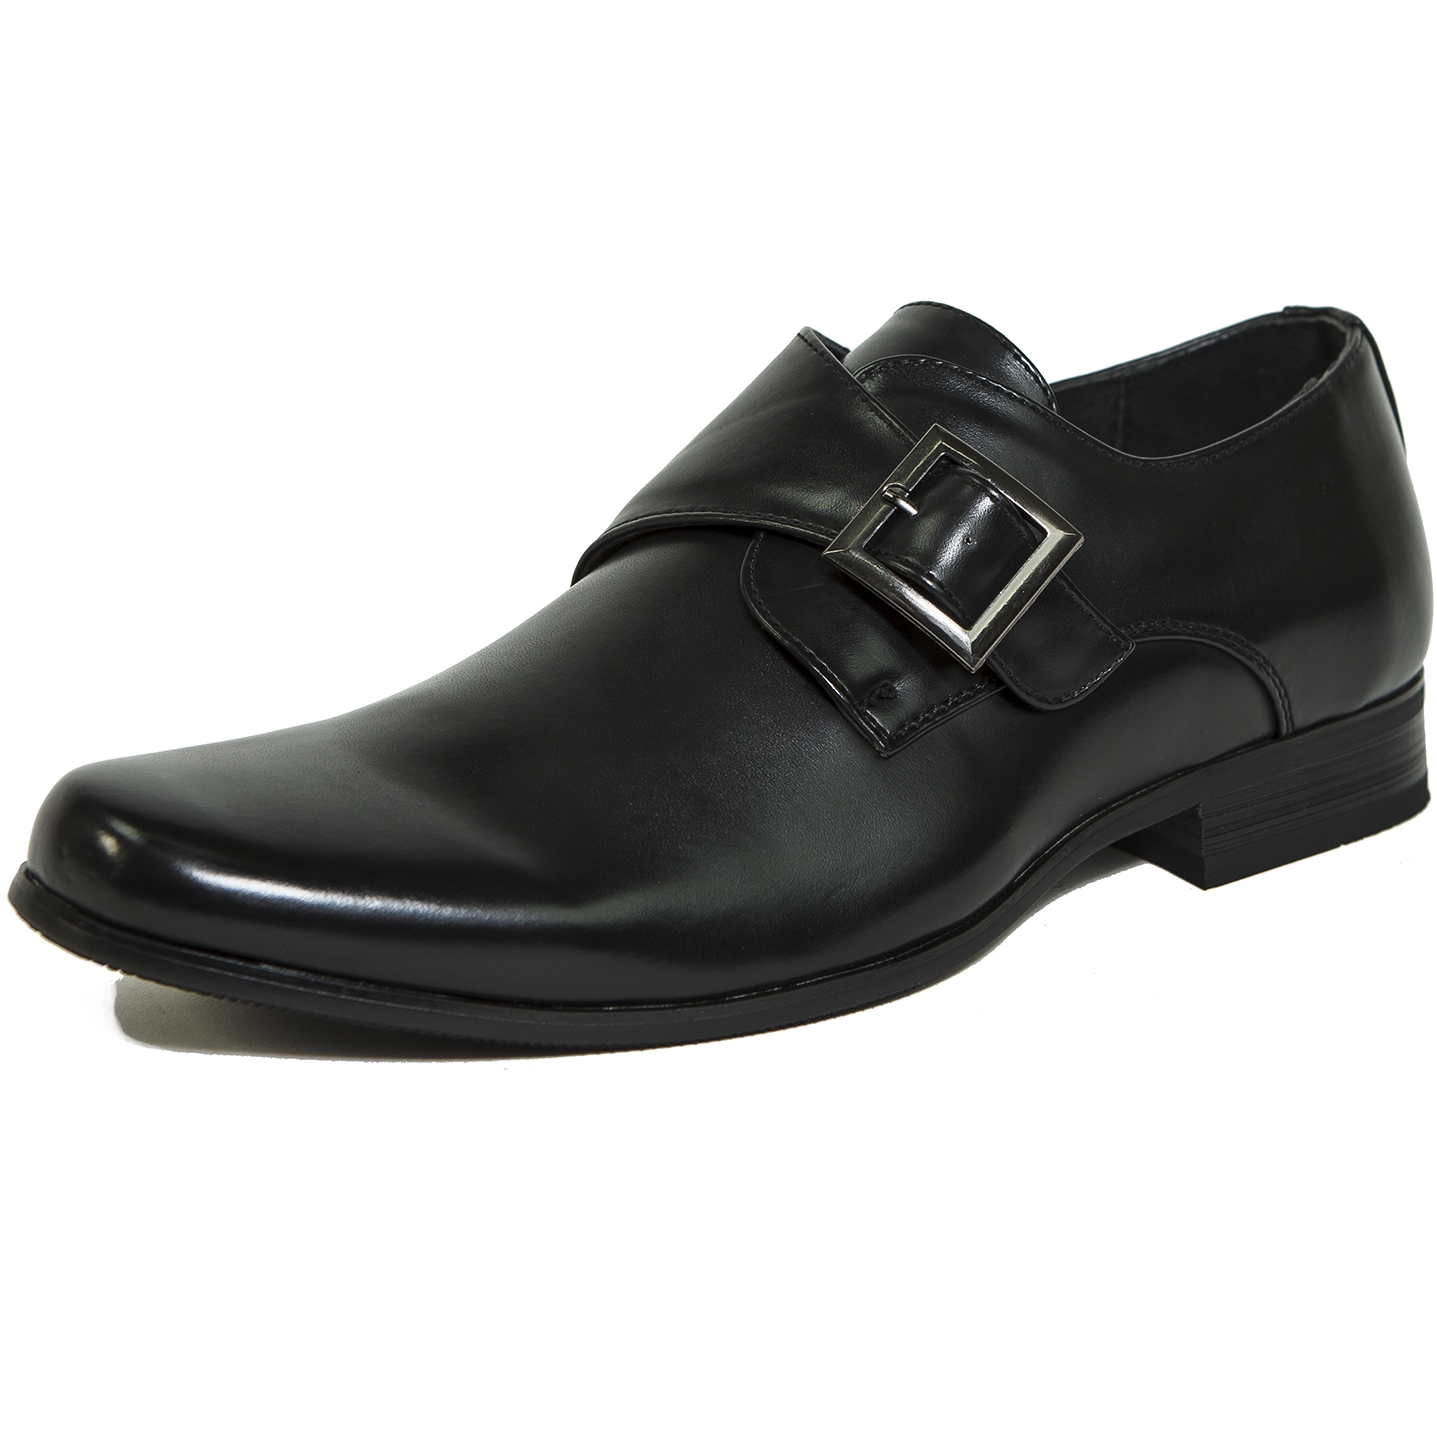 Suede Dress Shoes With Suit